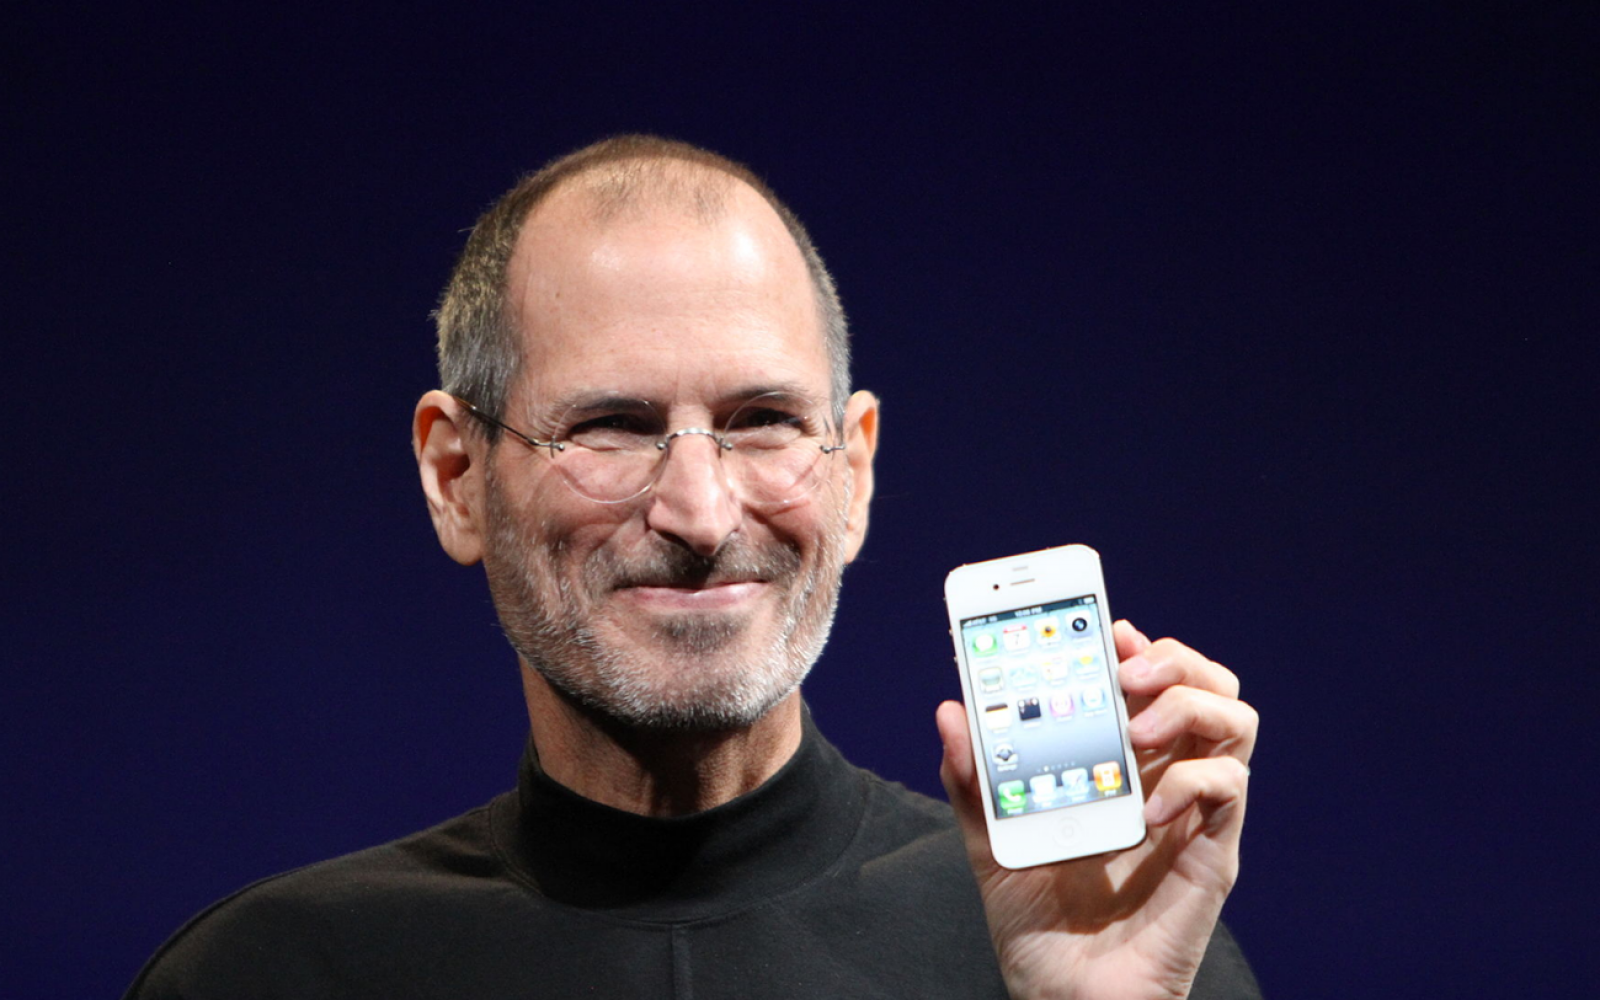 17 Of The Most Motivational Steve Jobs Quotes That Will Encourage You To Chase Your Dreams